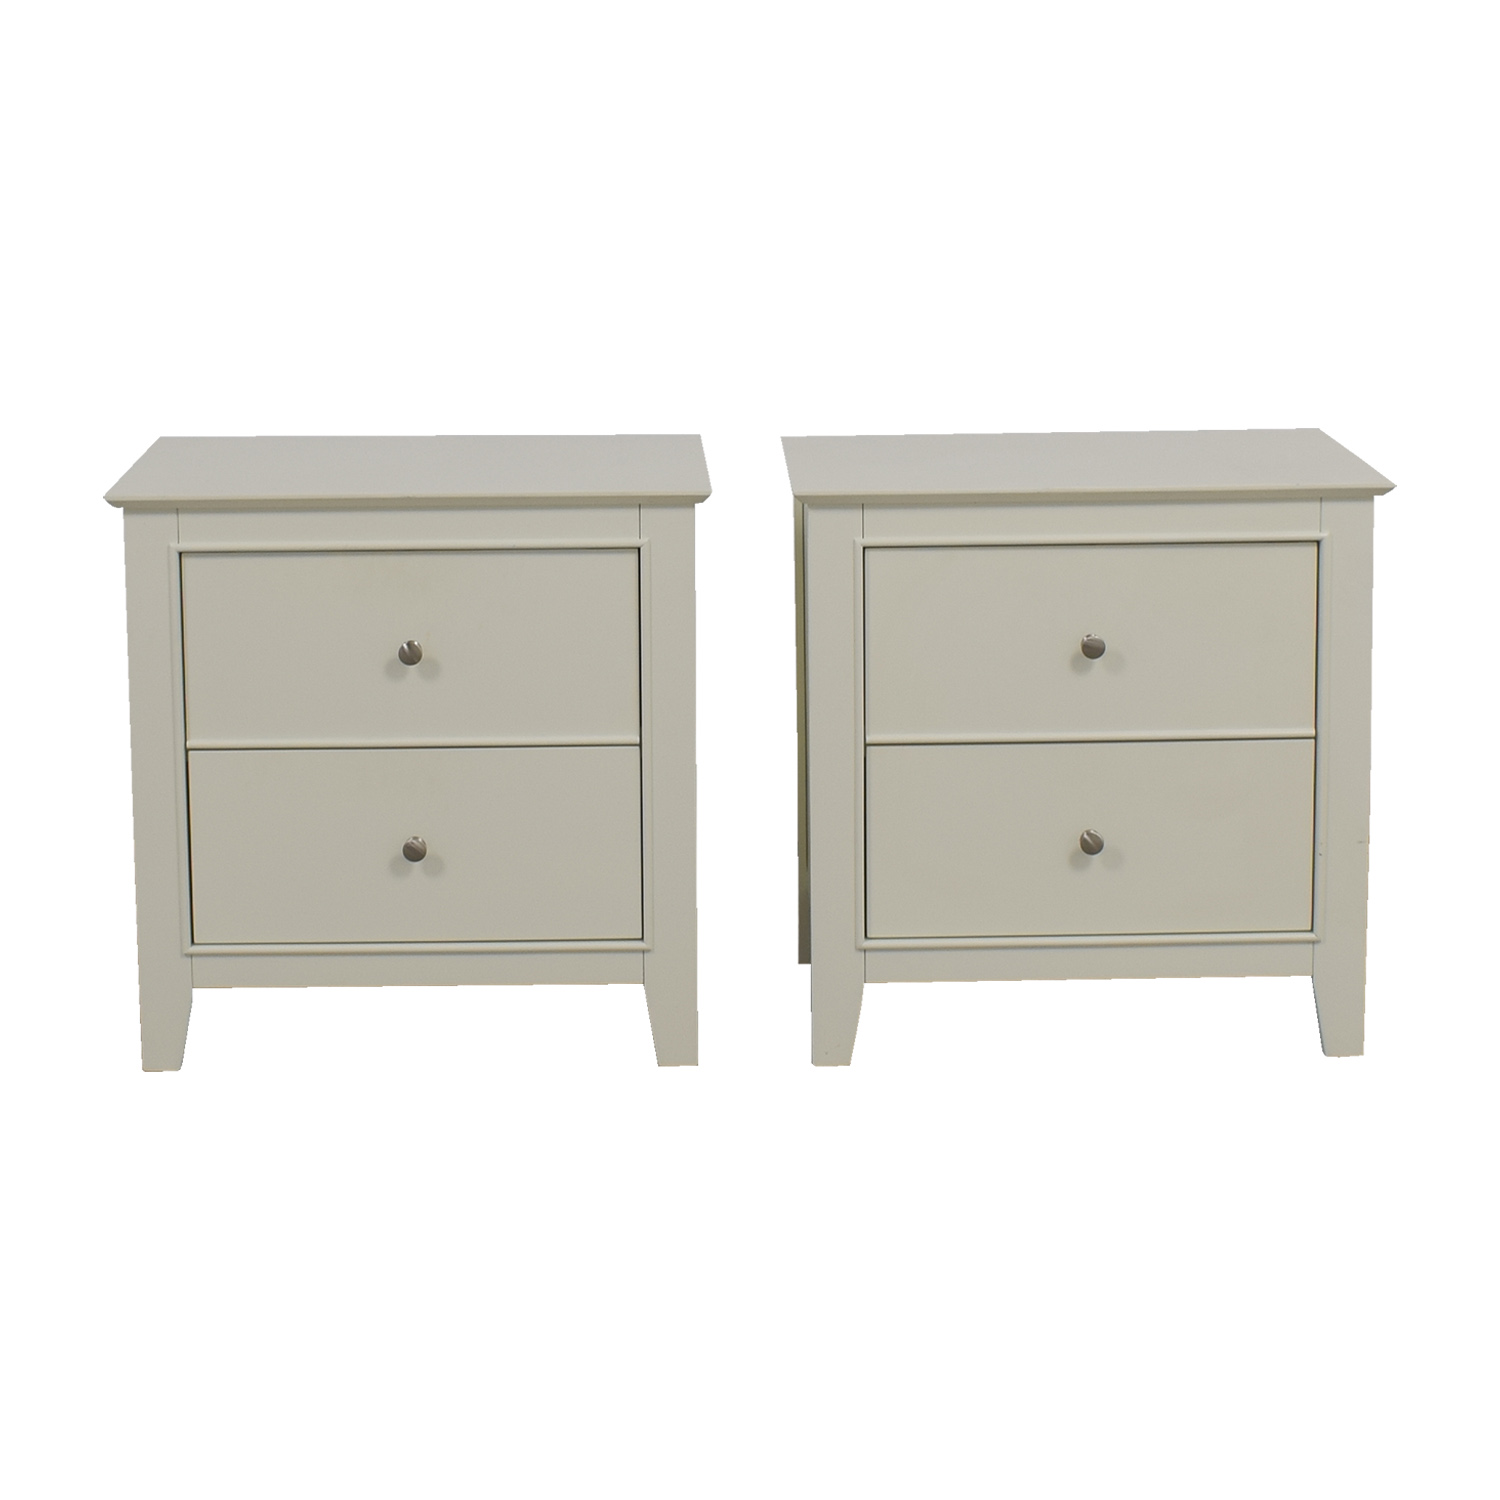 White Two-Drawer End Tables dimensions